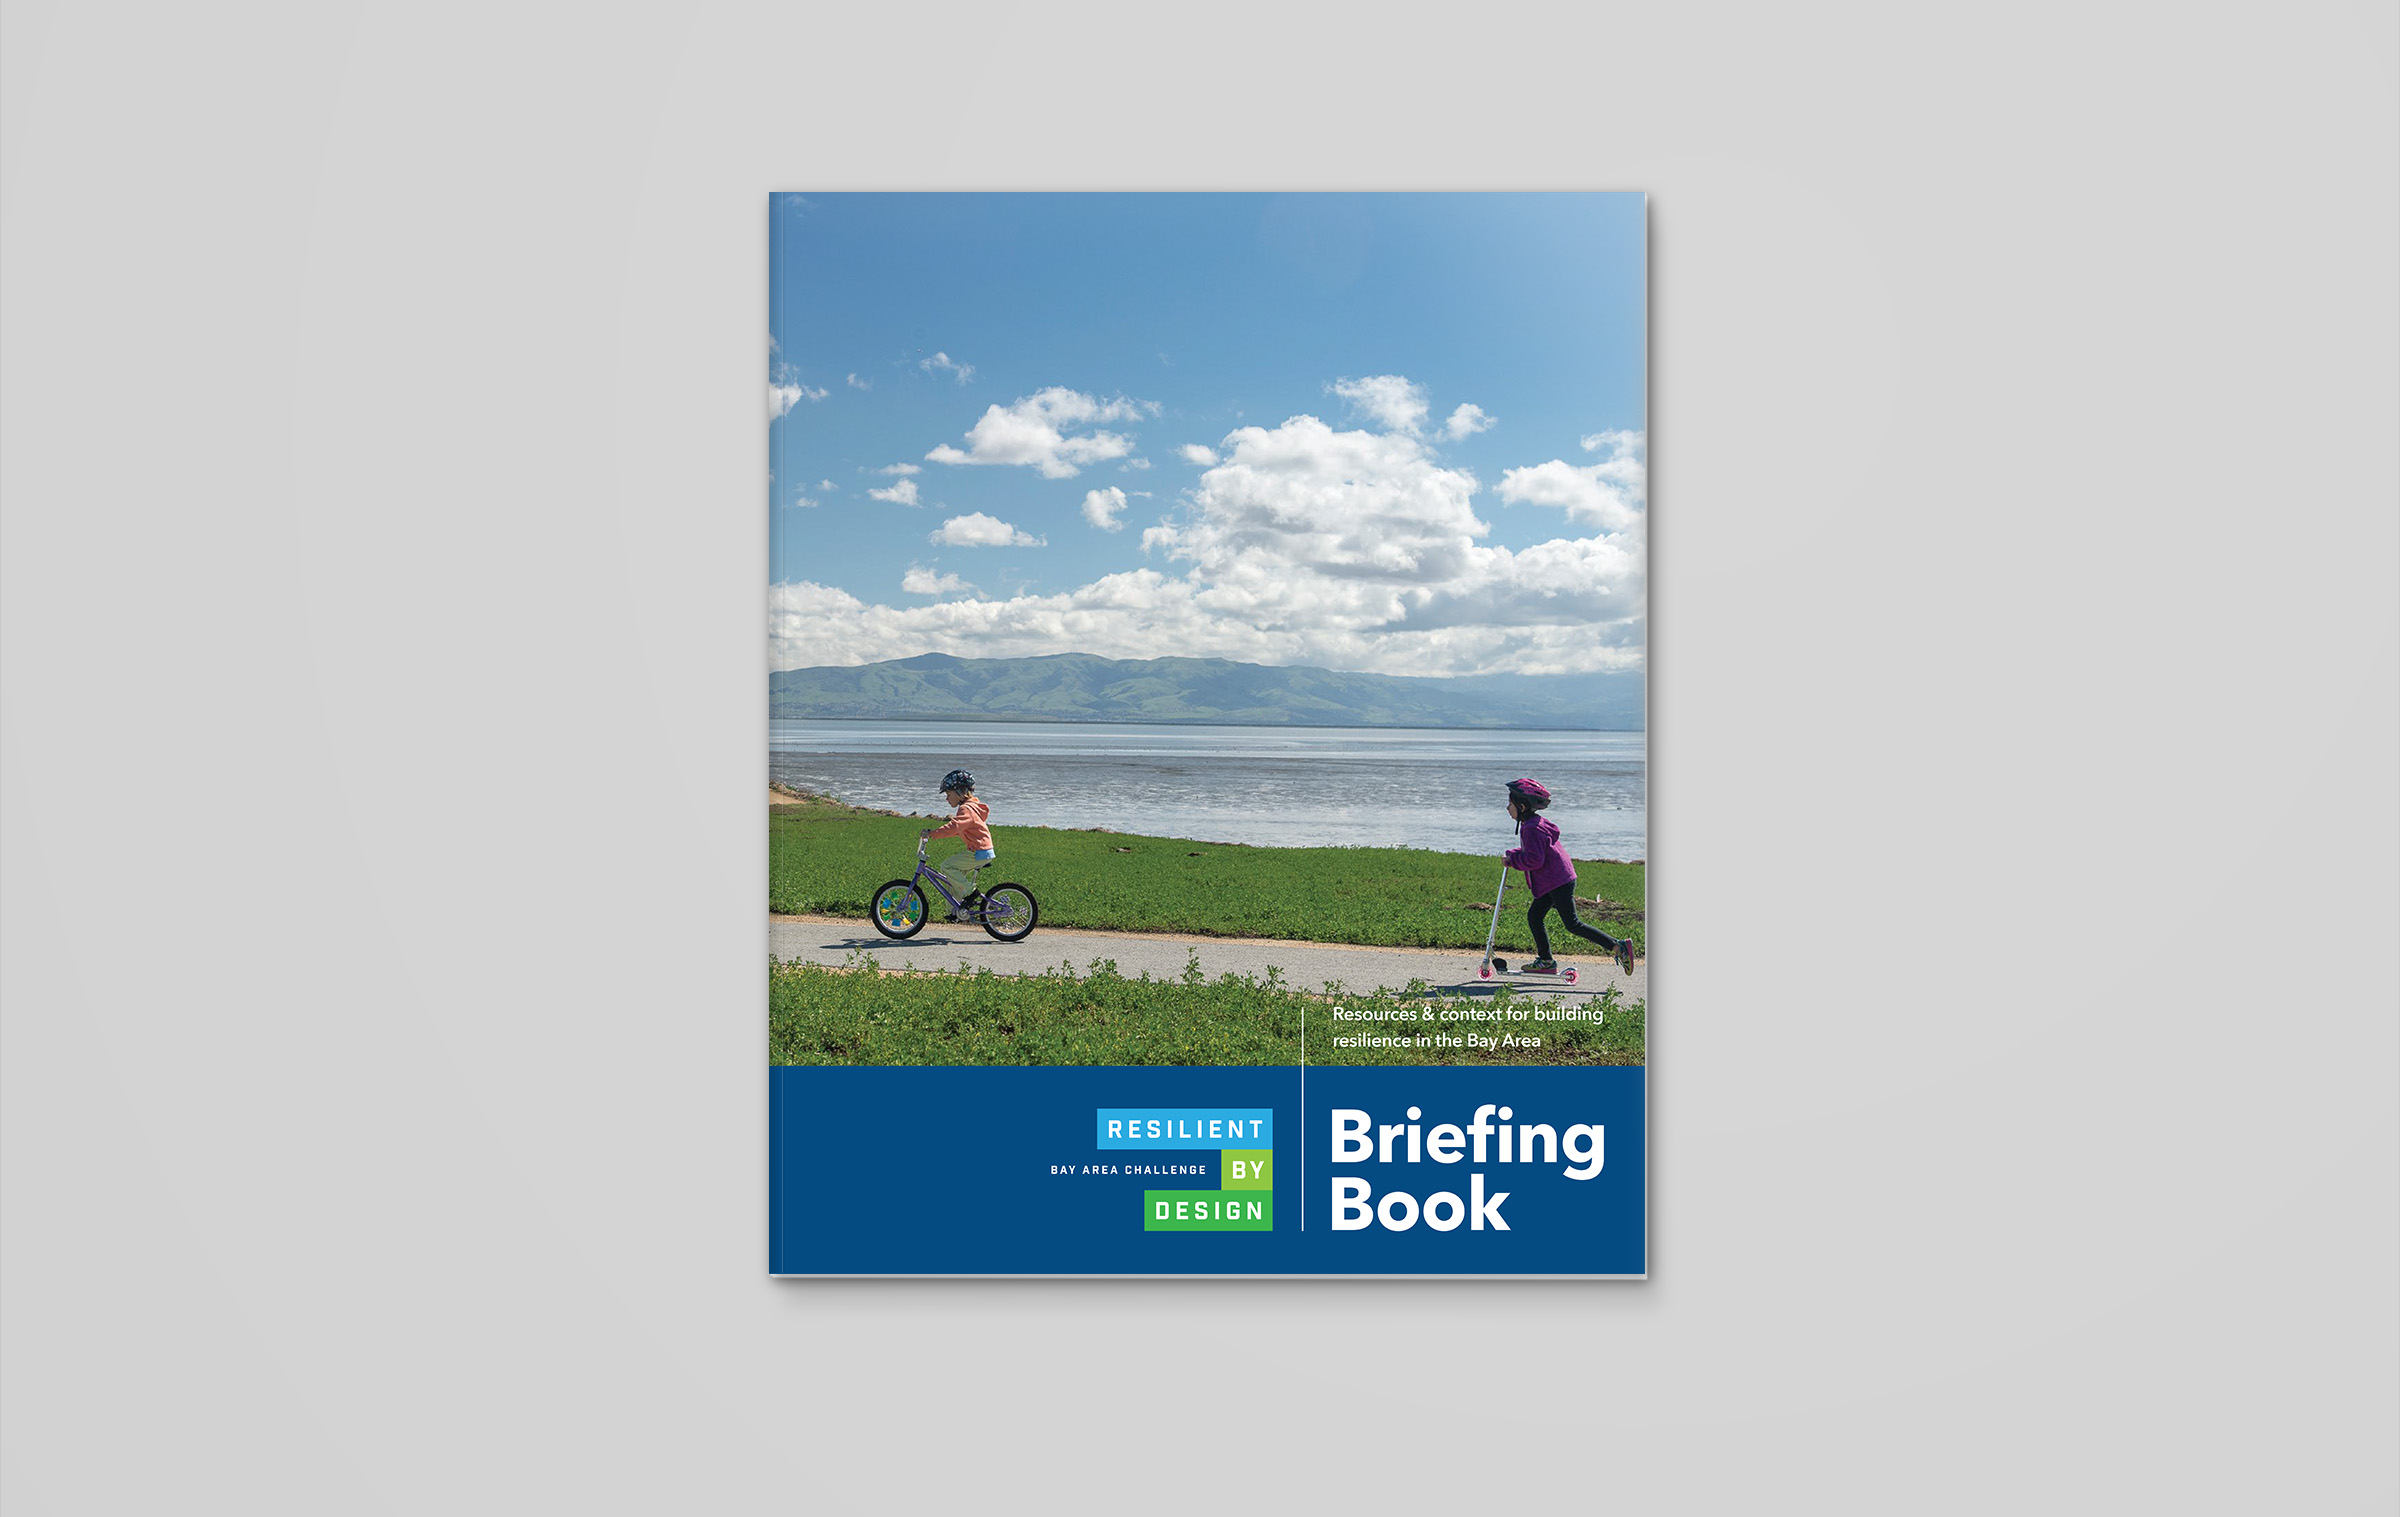 resilient-by-design-briefing-book-cover